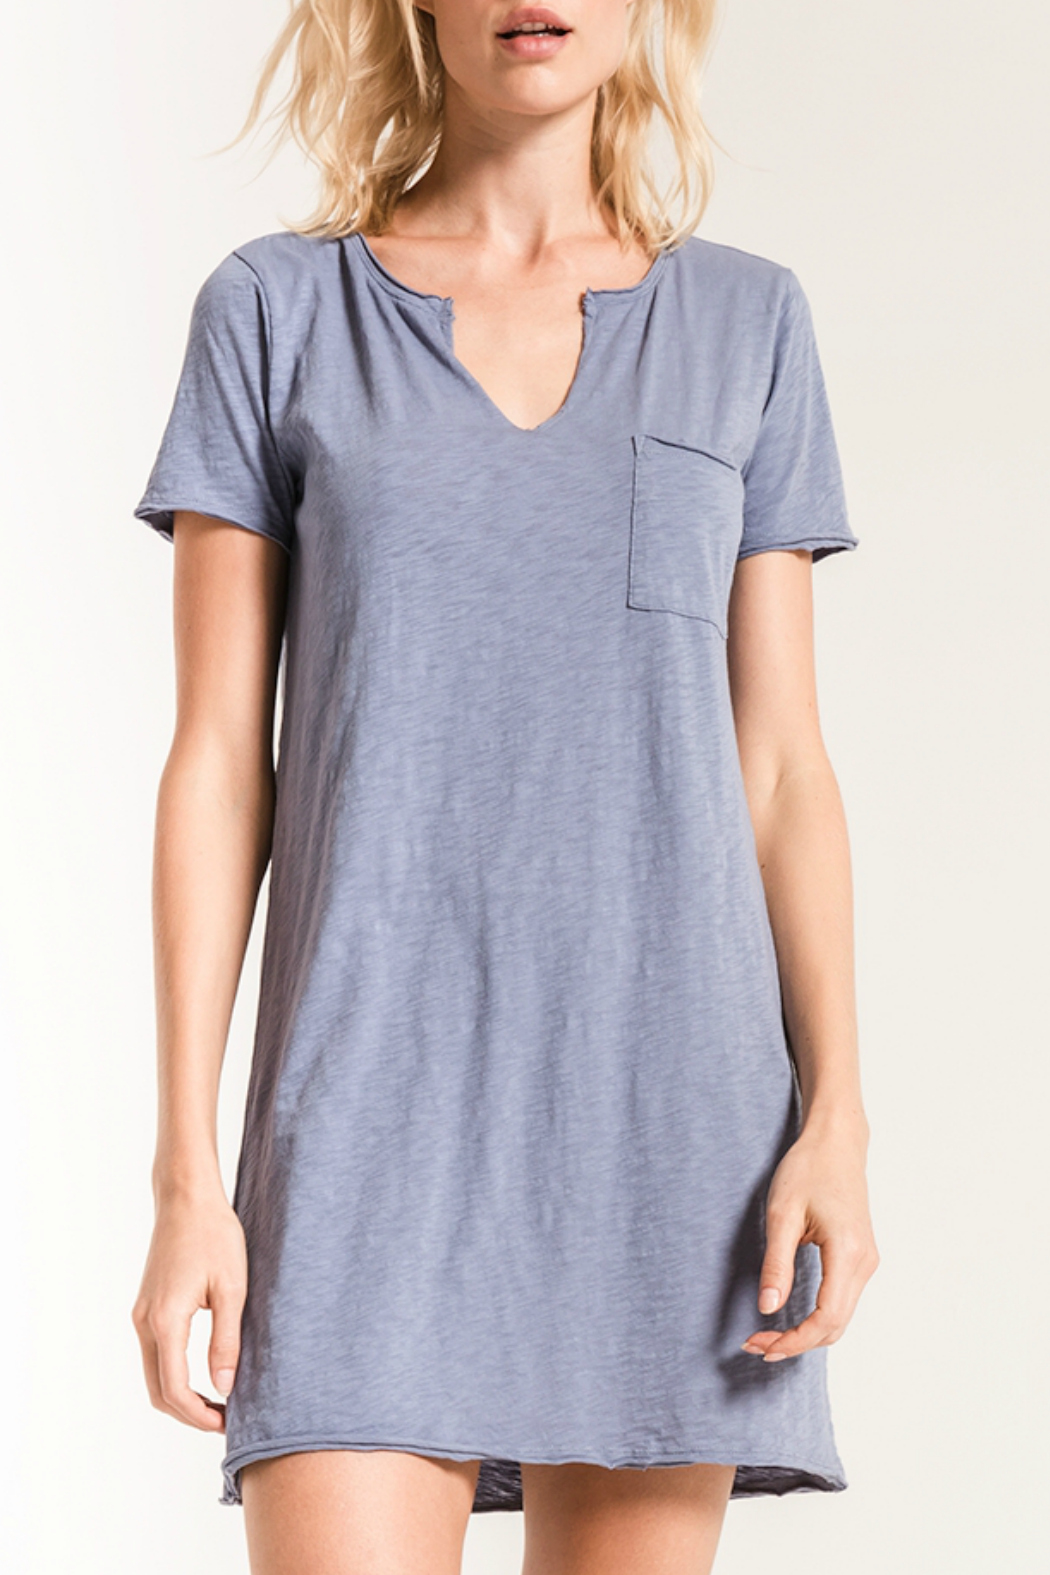 z supply Paige T Shirt Dress - Main Image